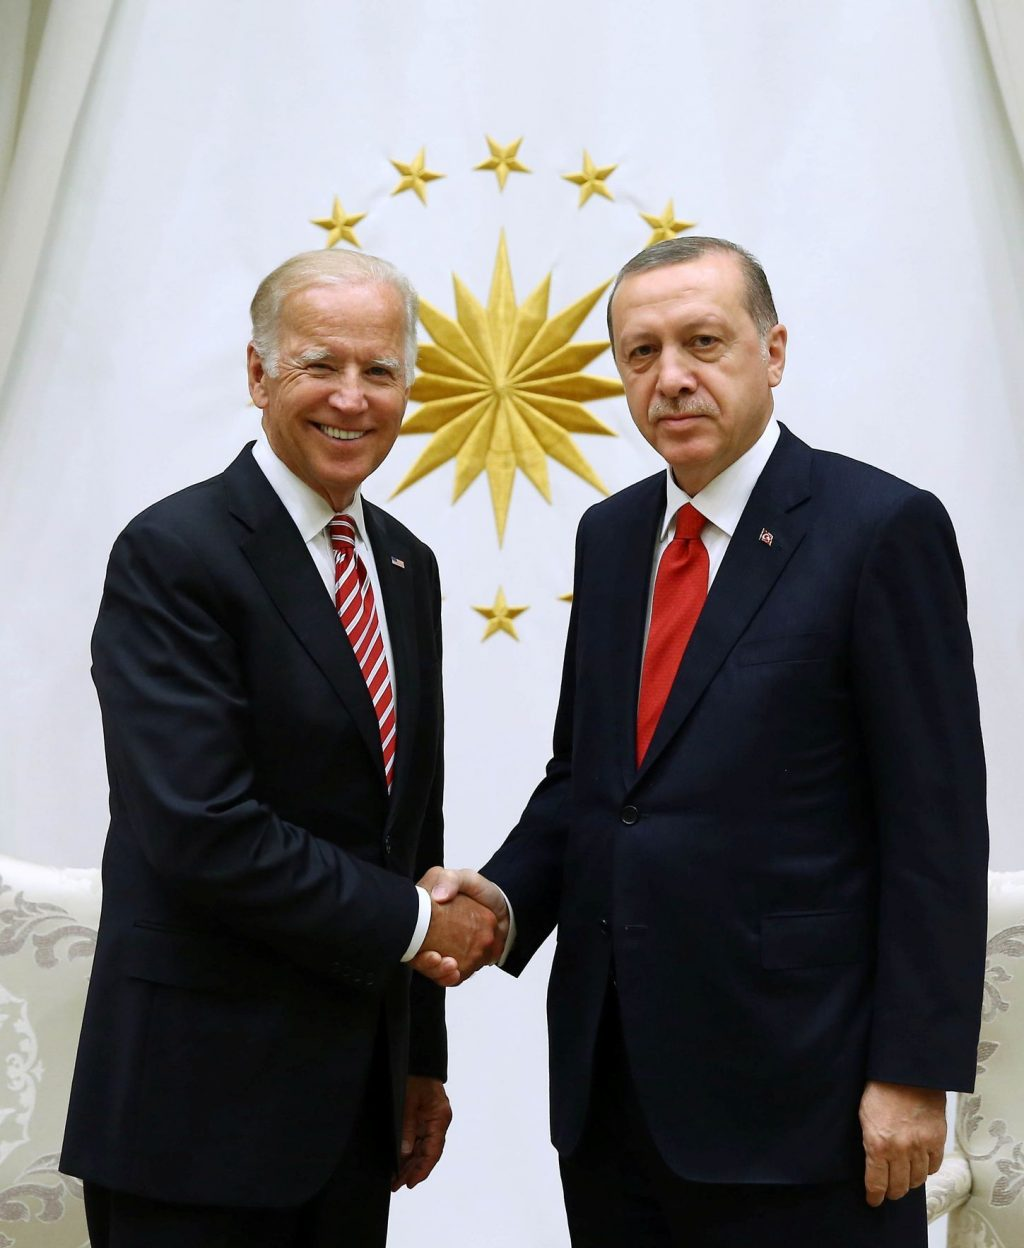 Biden officially recognized the Armenian Genocide during the Ottoman Empire, and Turkey denies this